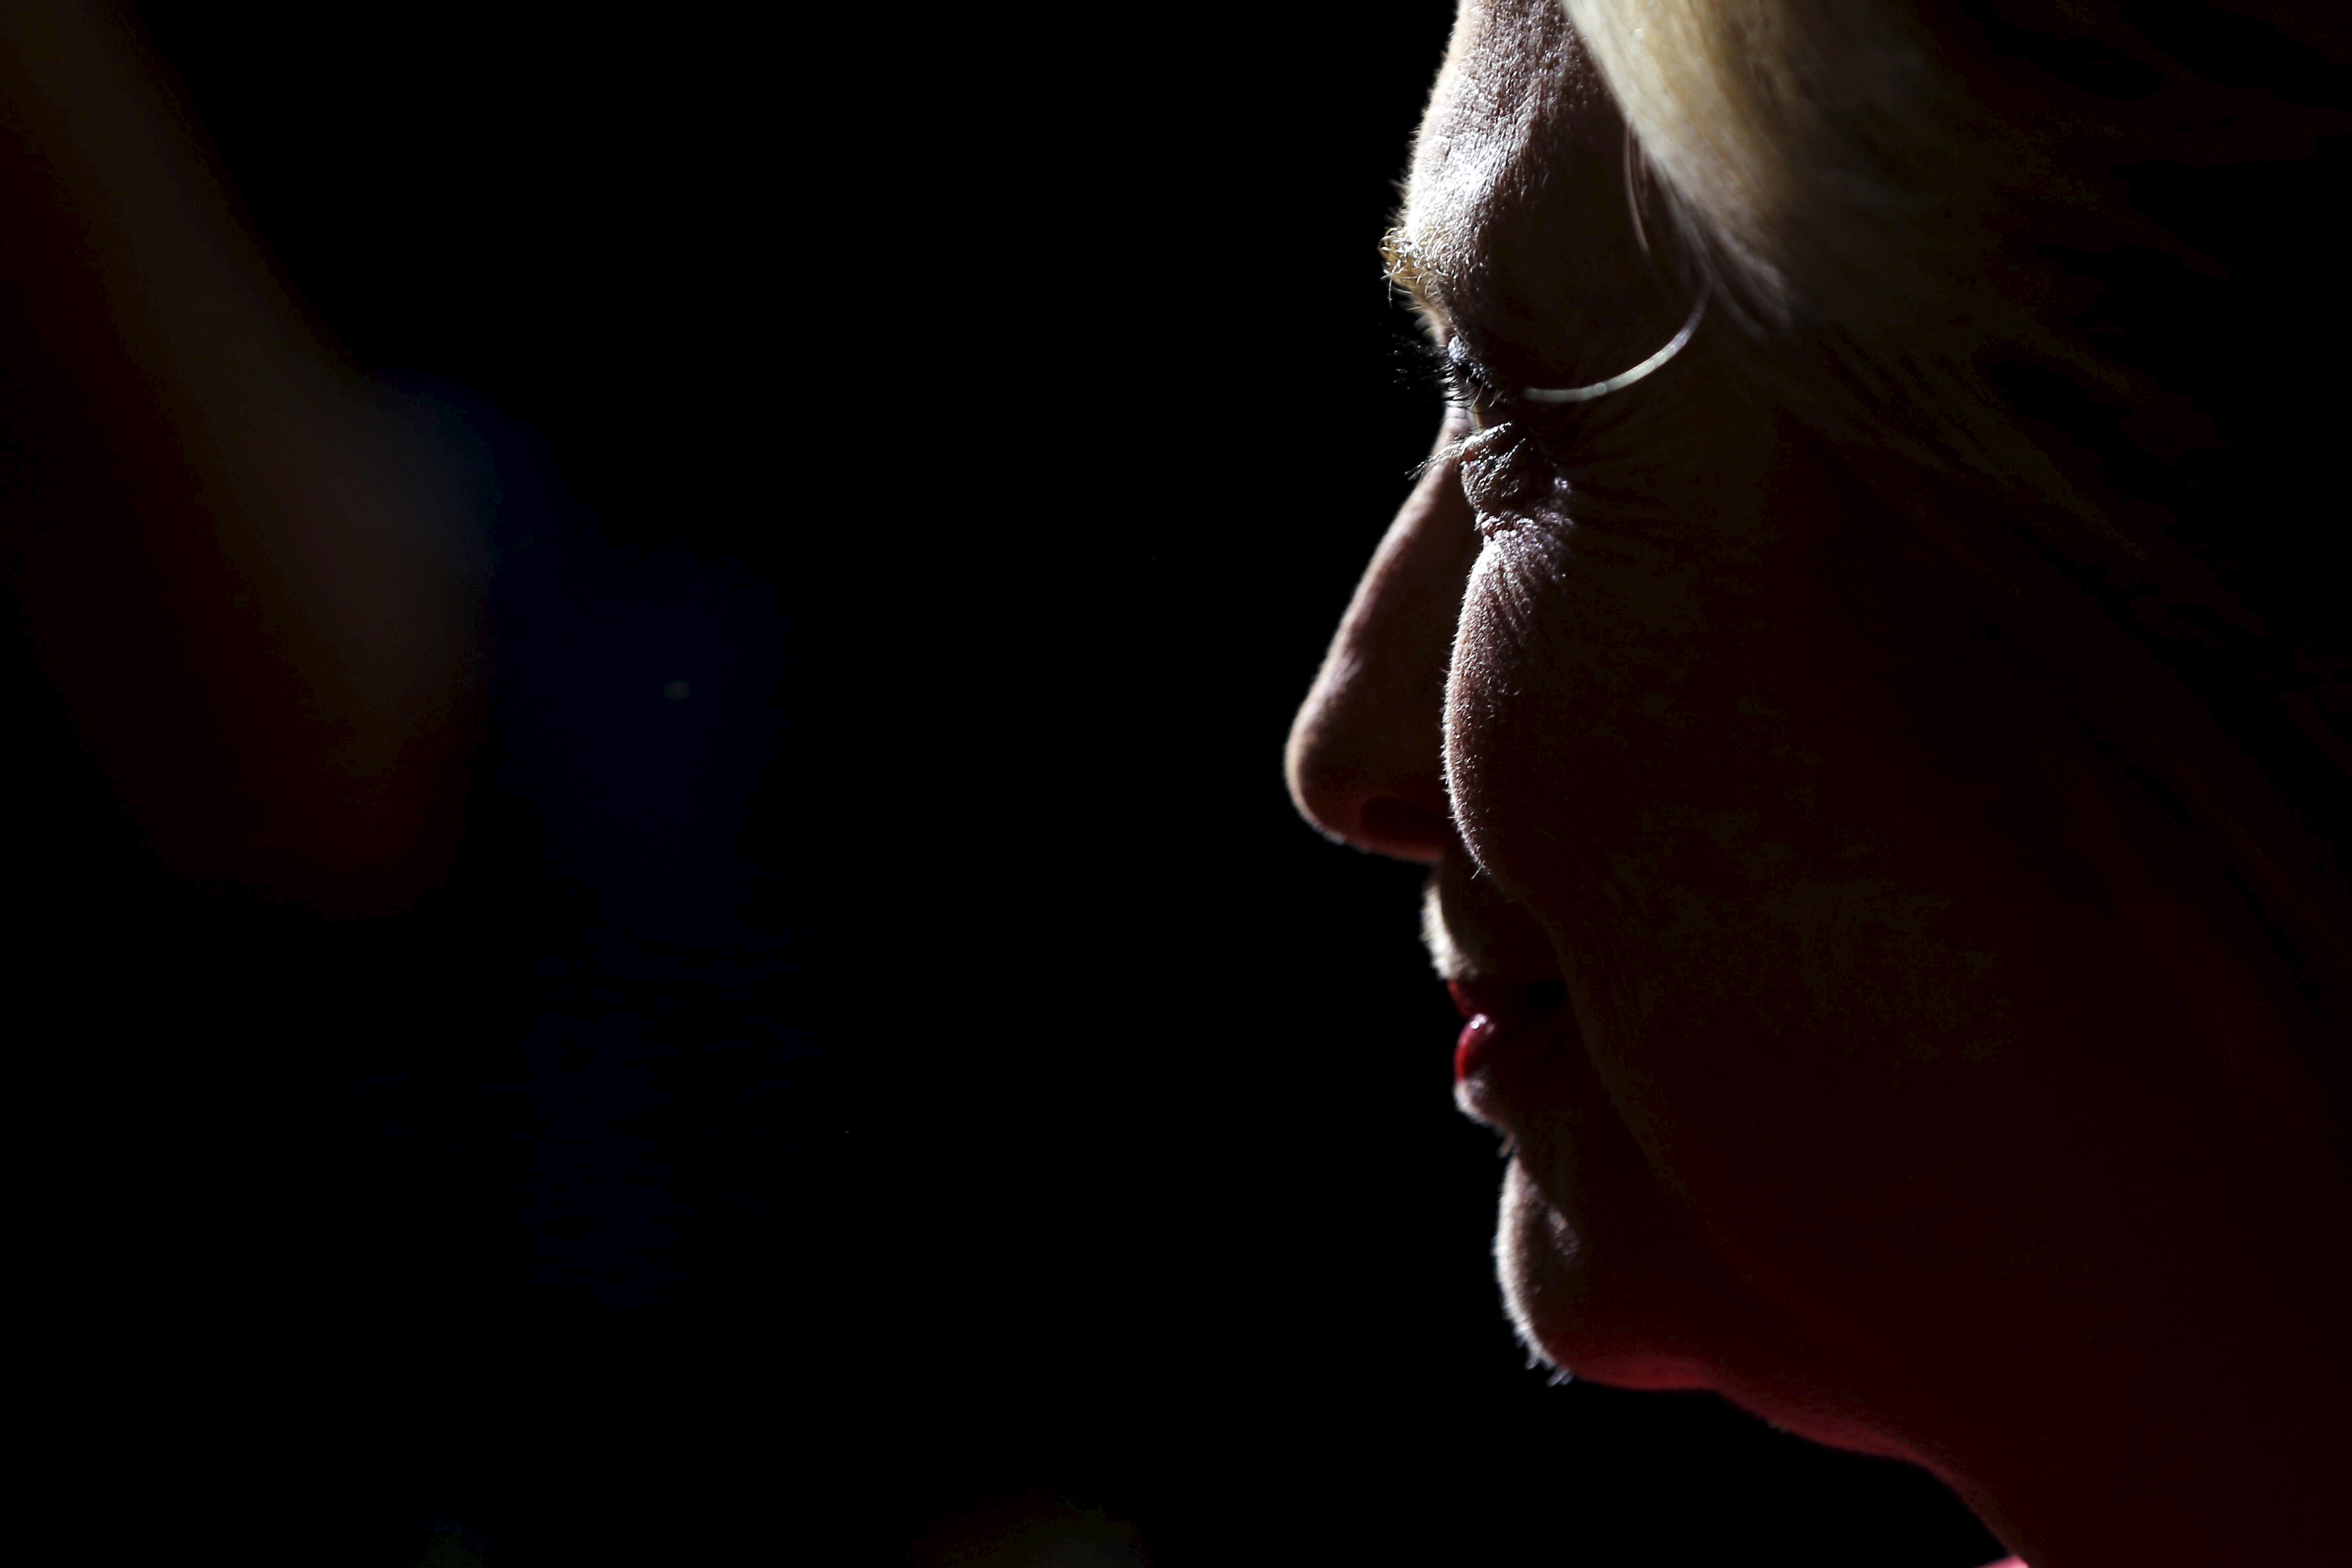 Democratic presidential candidate Hillary Clinton greets audience members at a campaign launch party in Concord, New Hampshire, June 15, 2015.  Campaigning in Iowa, Clinton has focused criticism on the Republican contenders, rather than on fellow Democratic rivals. Photo by Brian Snyder/Reuters